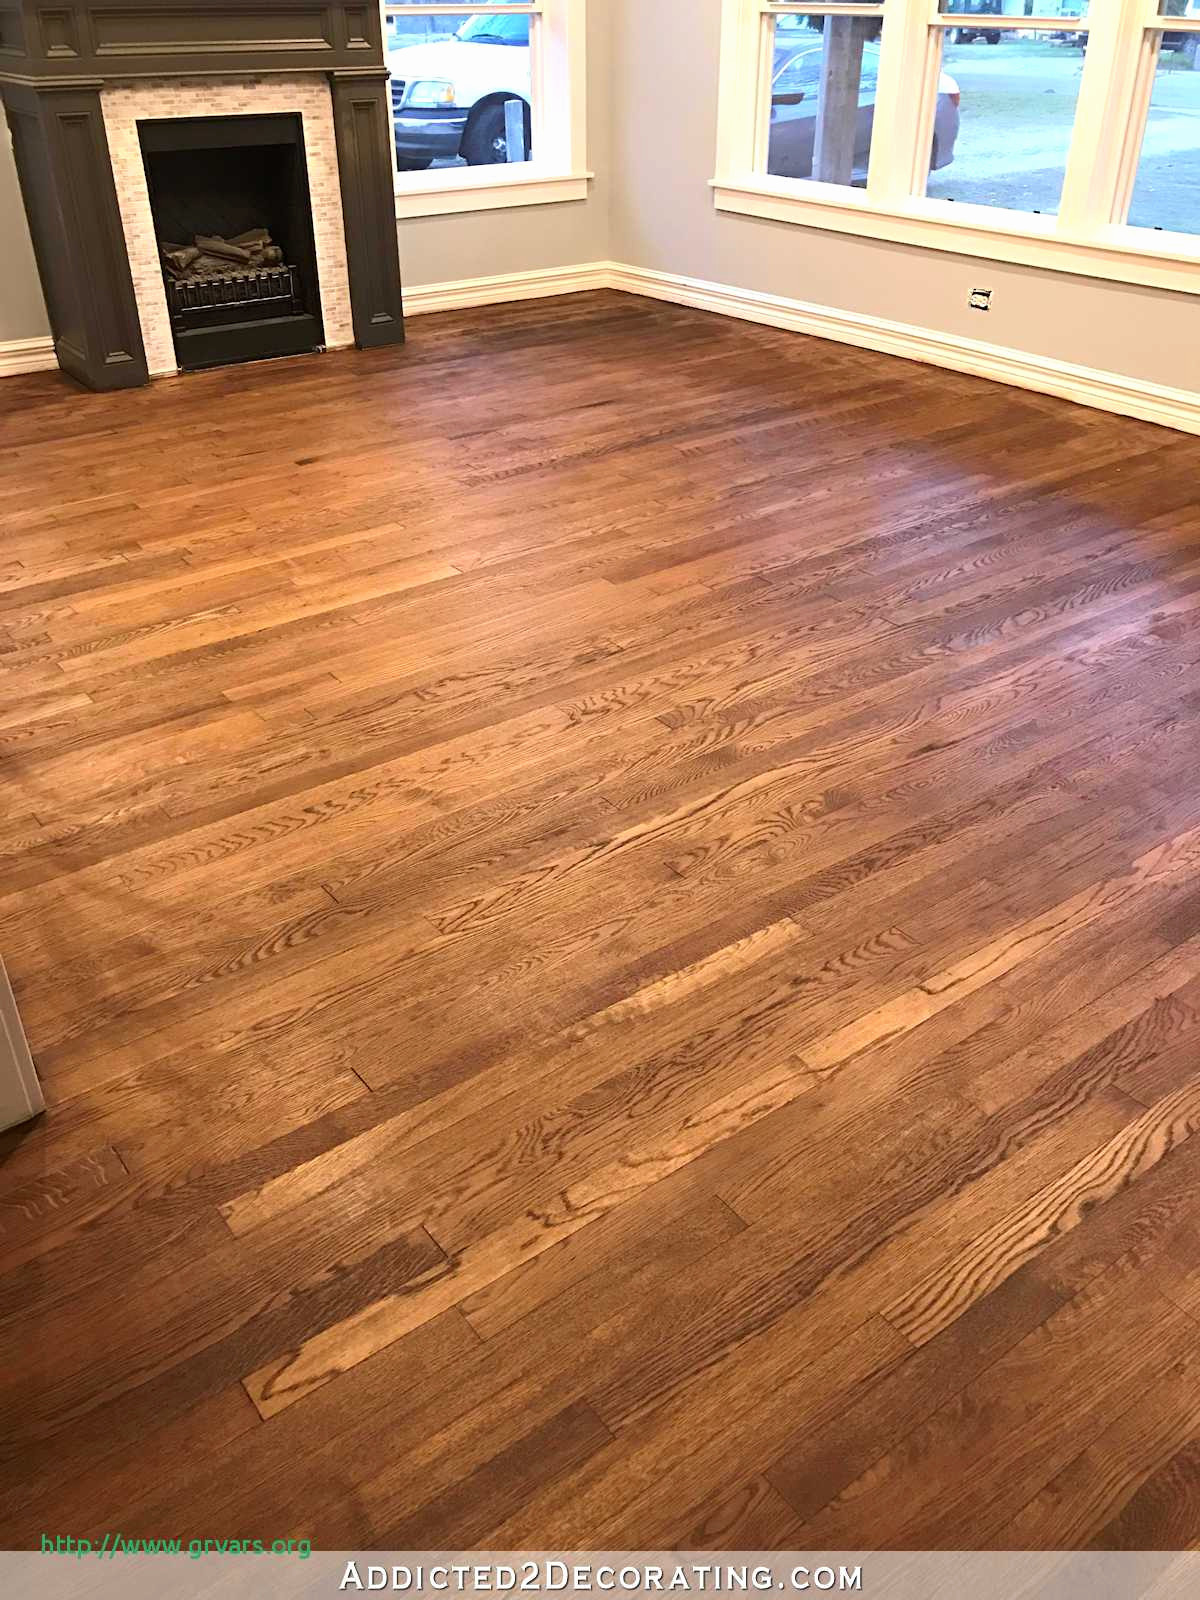 Hardwood Floor Sanding Cost Per Square Foot Of 60 Elegant the Best Of Stained Concrete Floor Cost Calculator Regarding Staining Red Oak Hardwood Floors 8a Living Room and Entryway